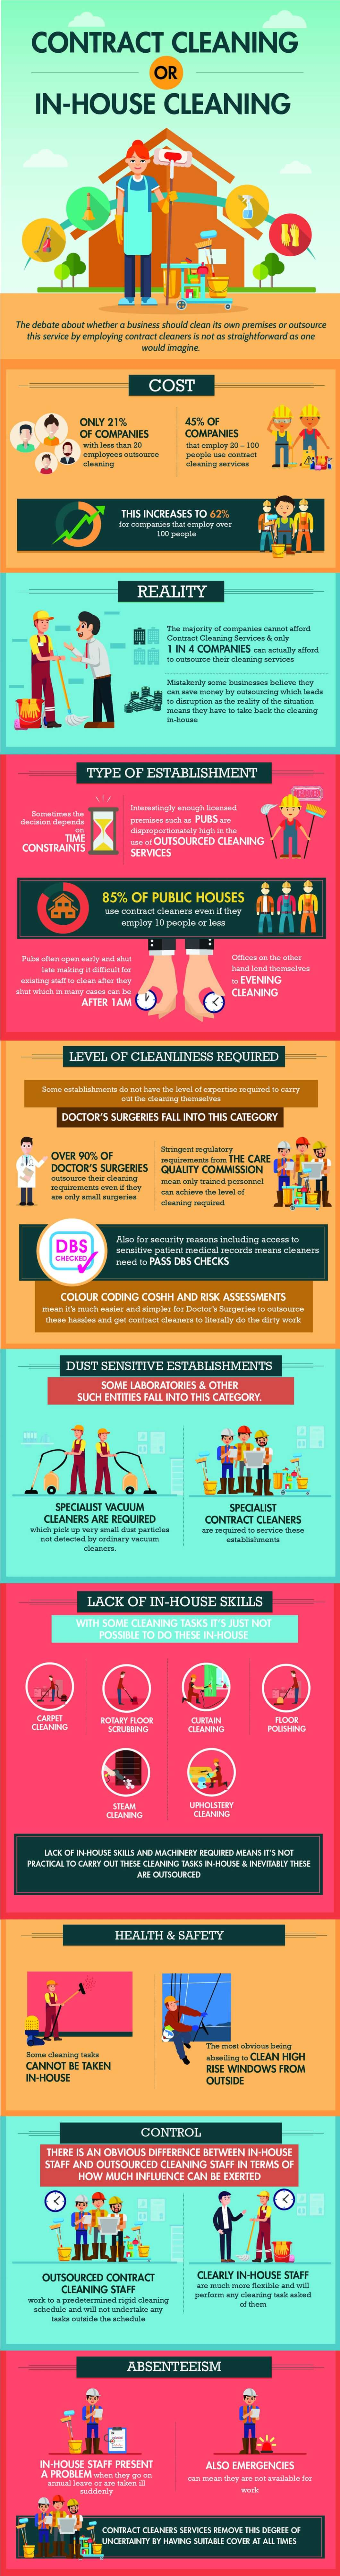 Contract Cleaning Vs In-House Cleaning: Pros and Cons - Infographic